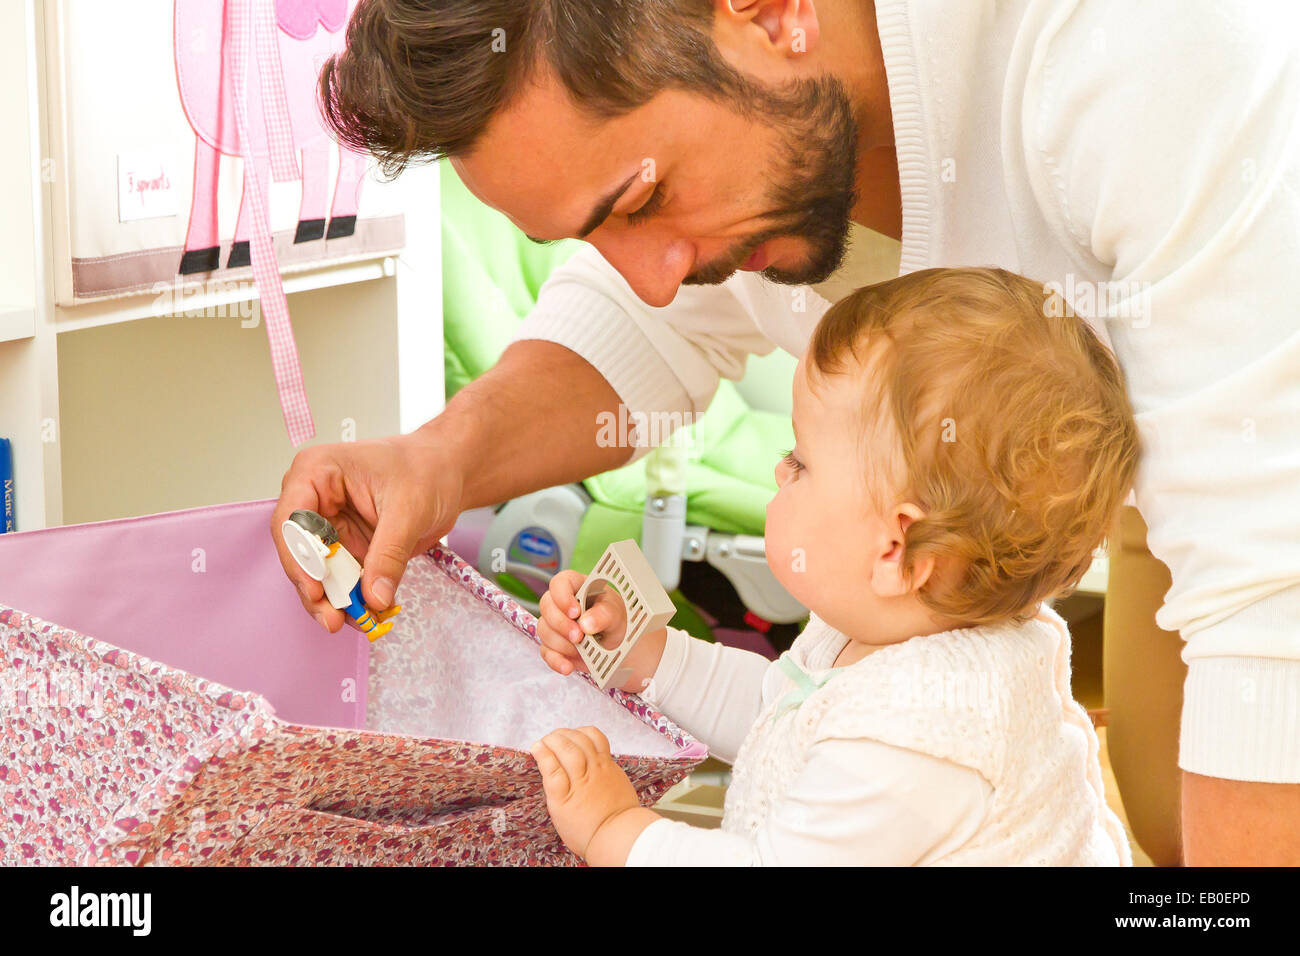 Father with baby at home - Stock Image